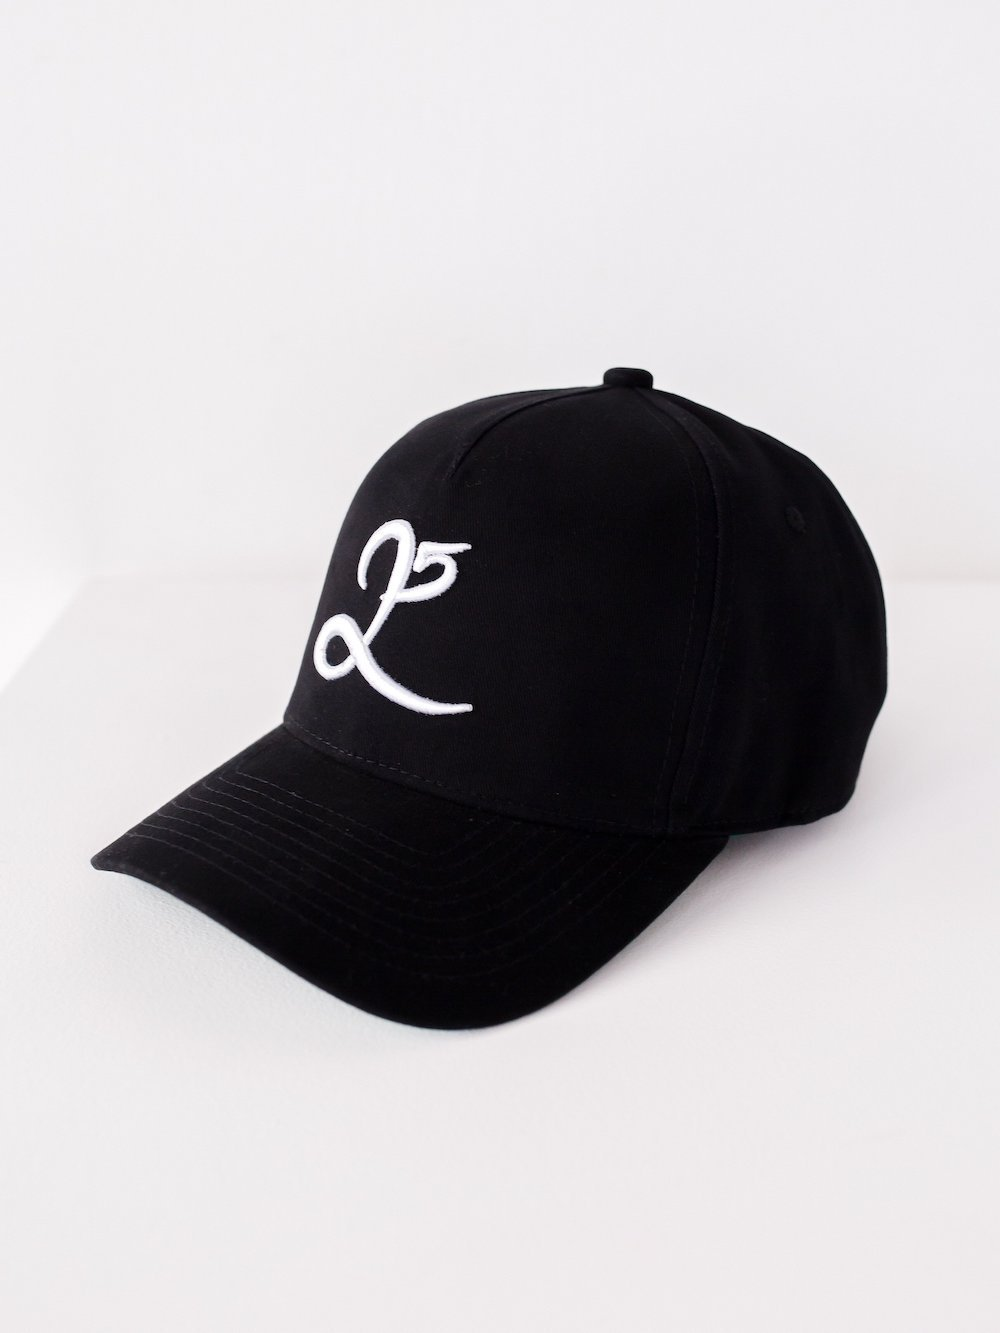 TwentyFive Fury V Edition Cap - Black/White